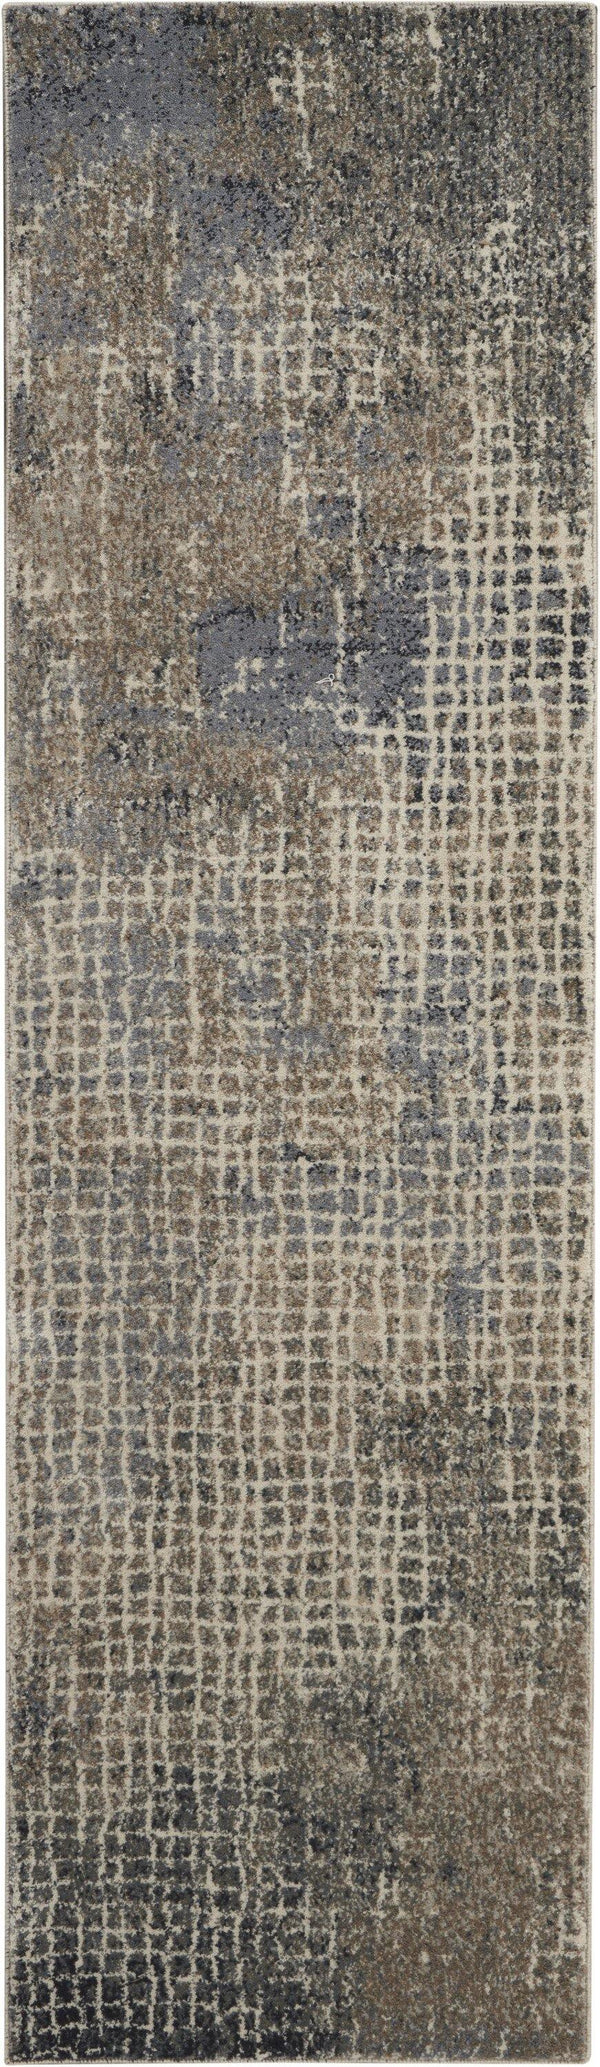 kathy ireland Moroccan Celebration KI383 Ivory/Grey Area rug